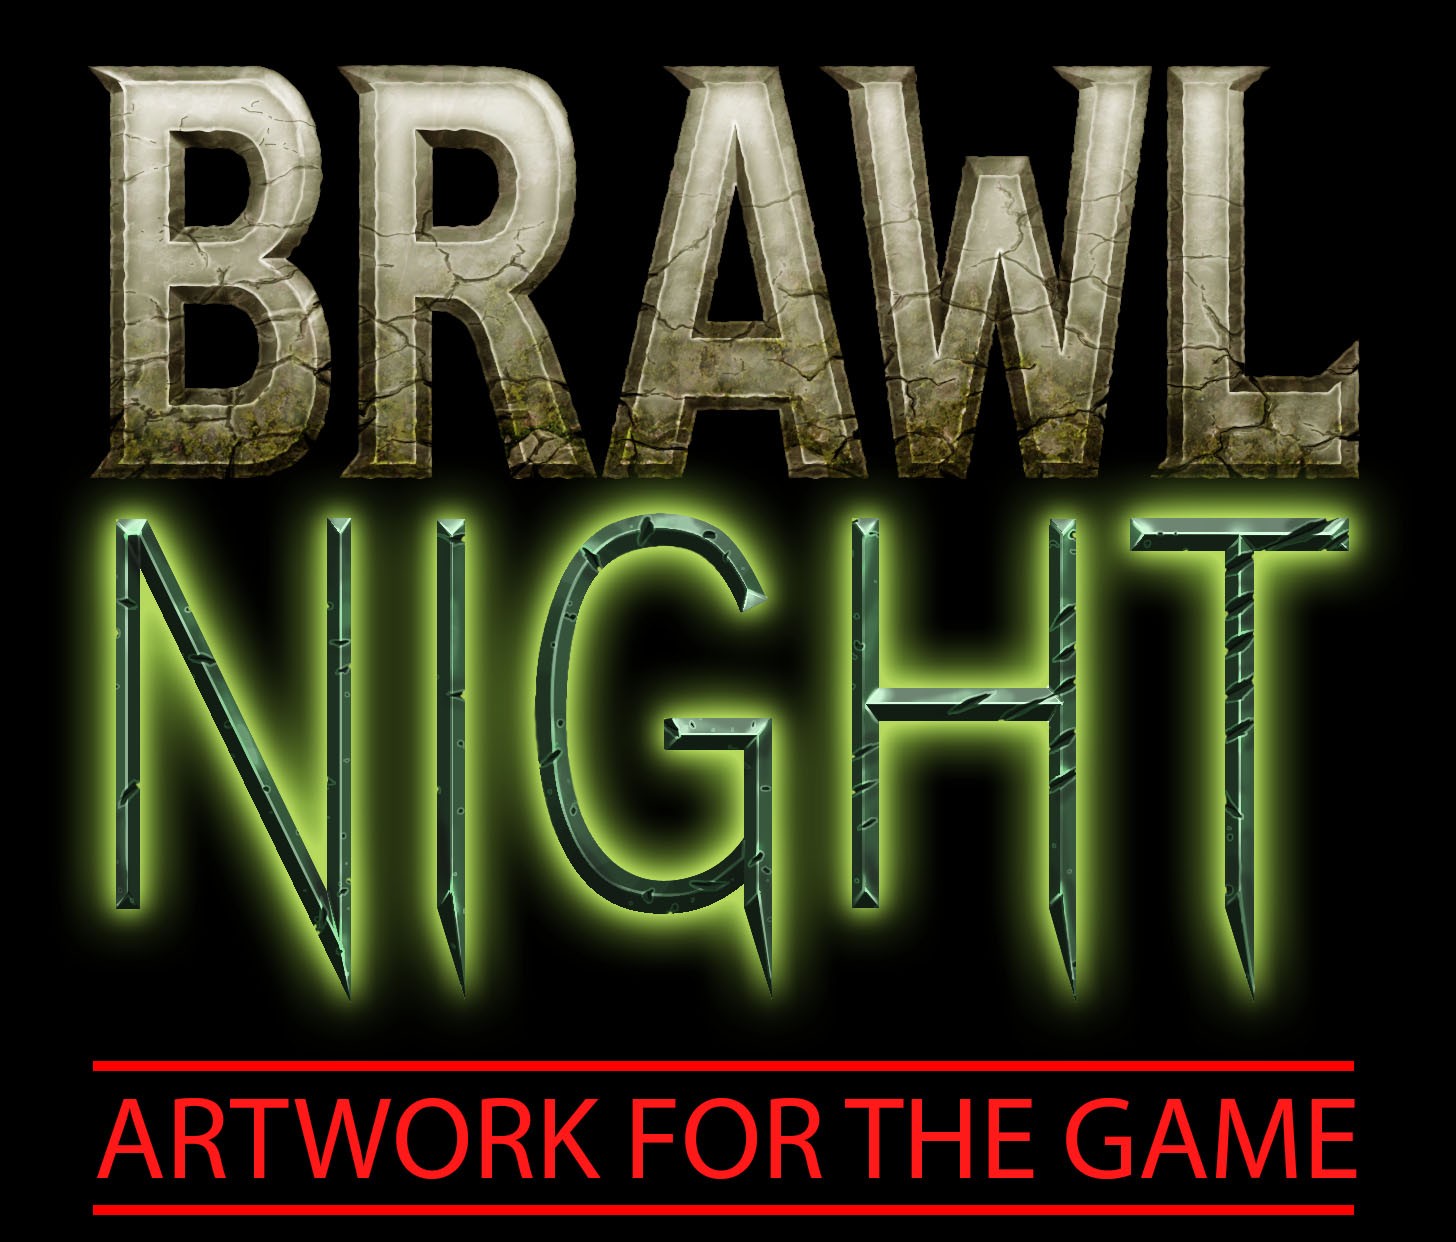 Brawl Night